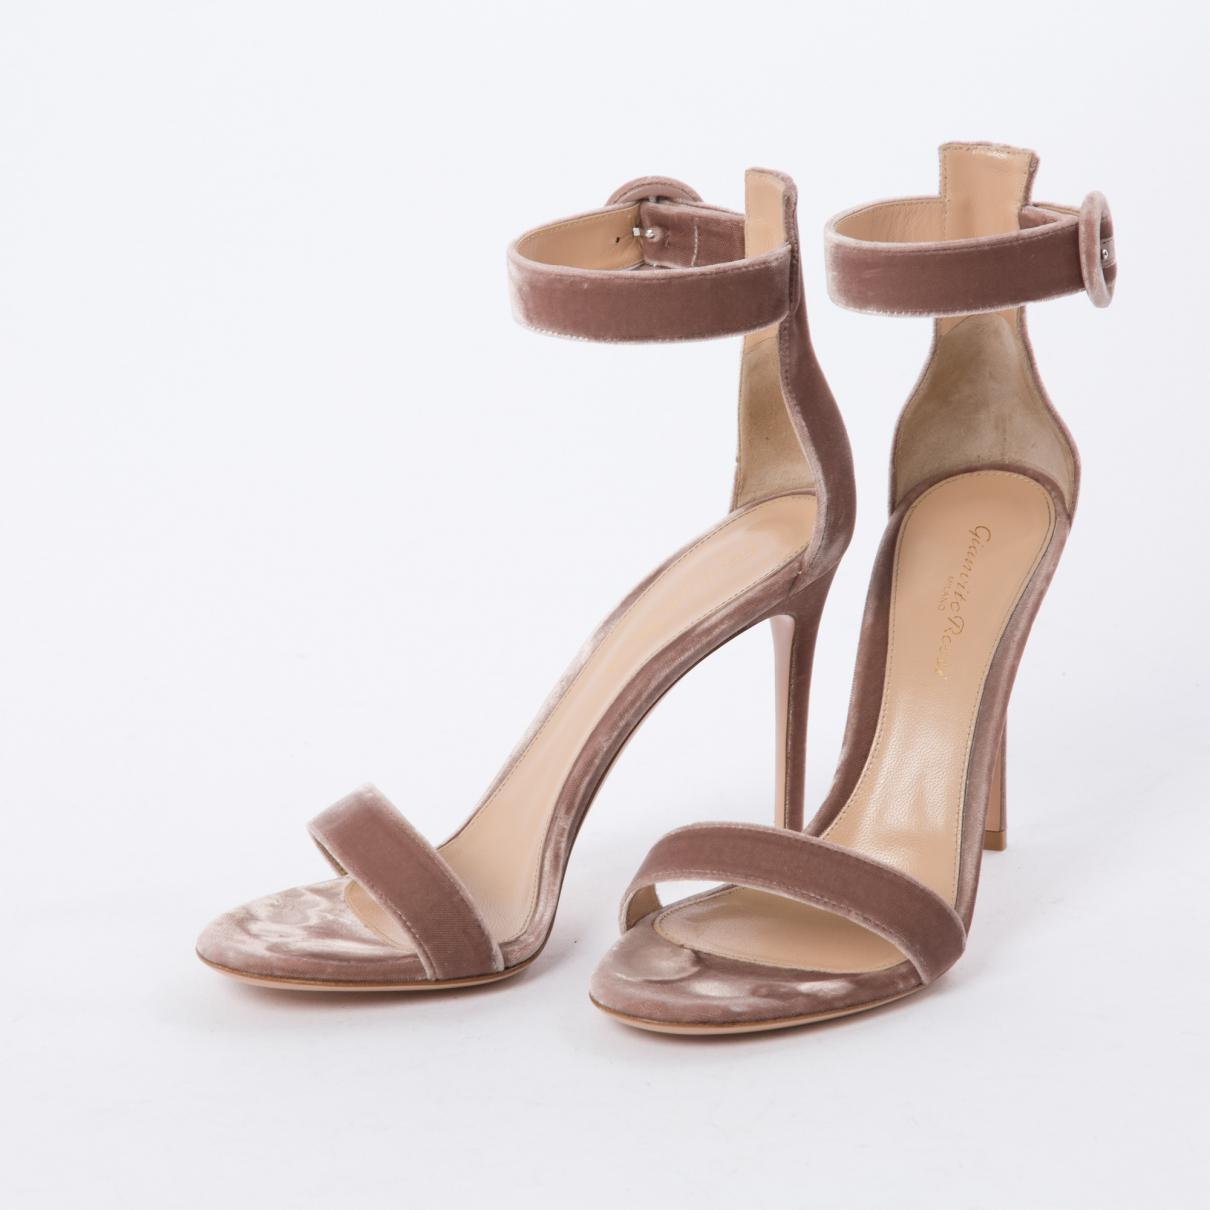 Pre-owned - Velvet sandals Gianvito Rossi ejVOAVtO